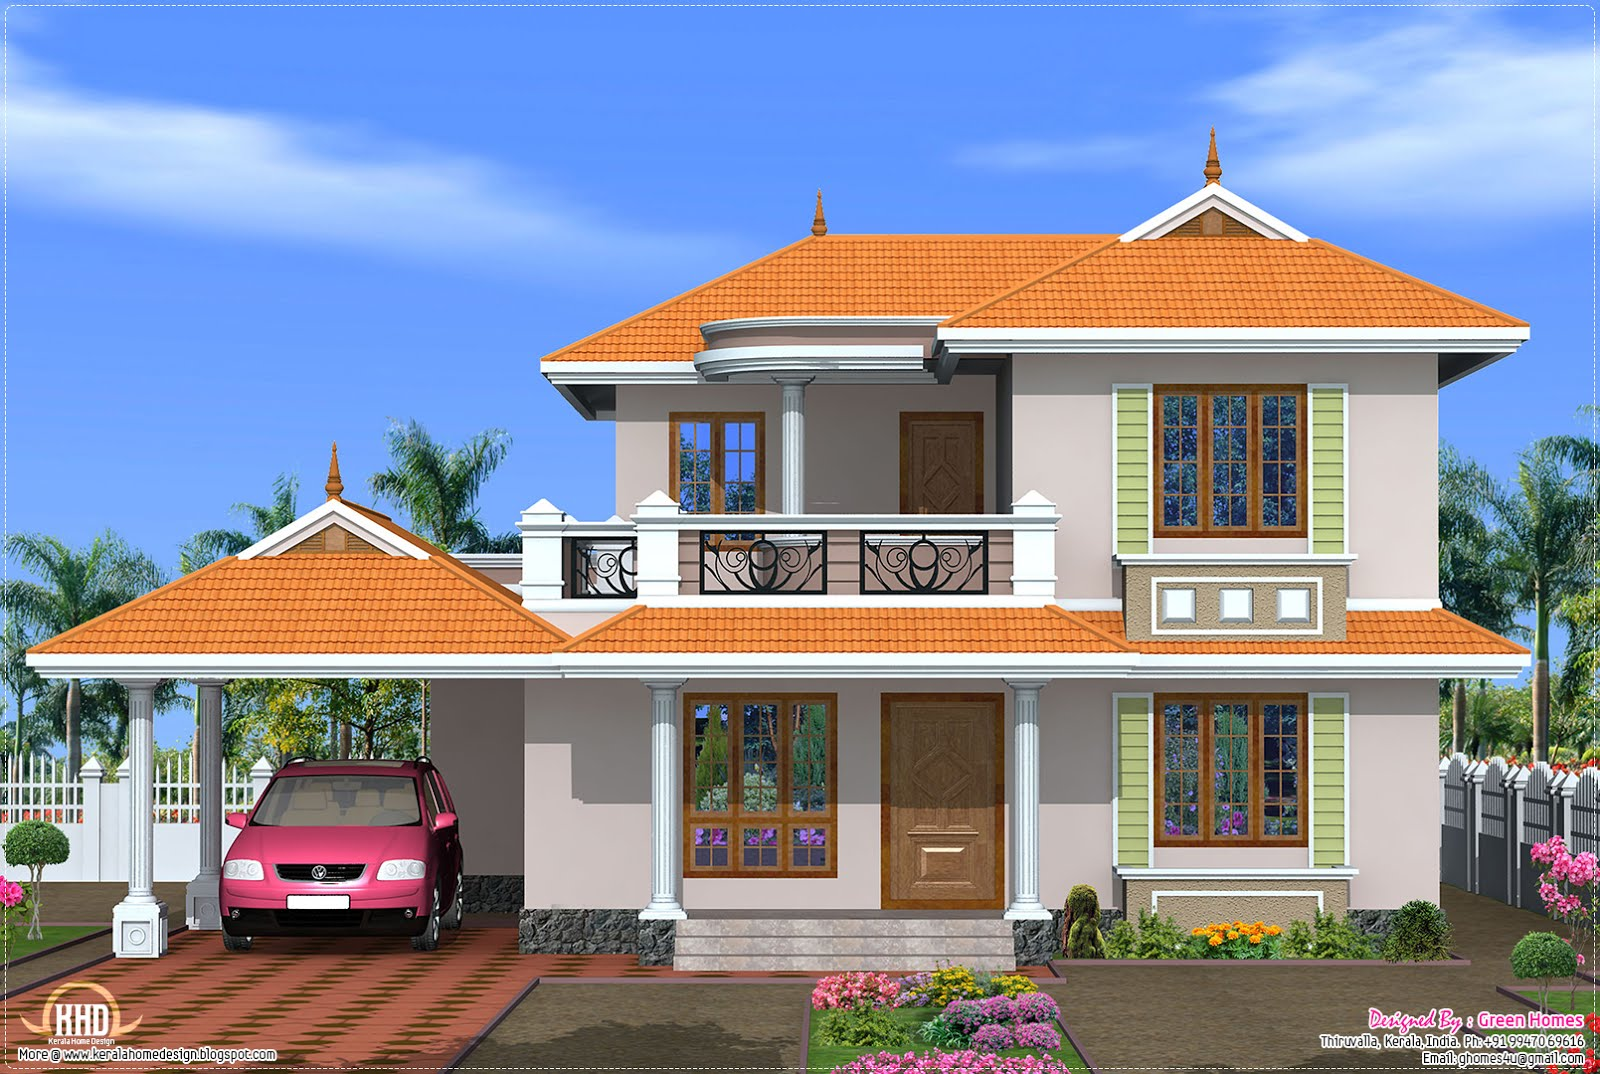 Window models for houses home decorating ideas - Kerala exterior model homes ...